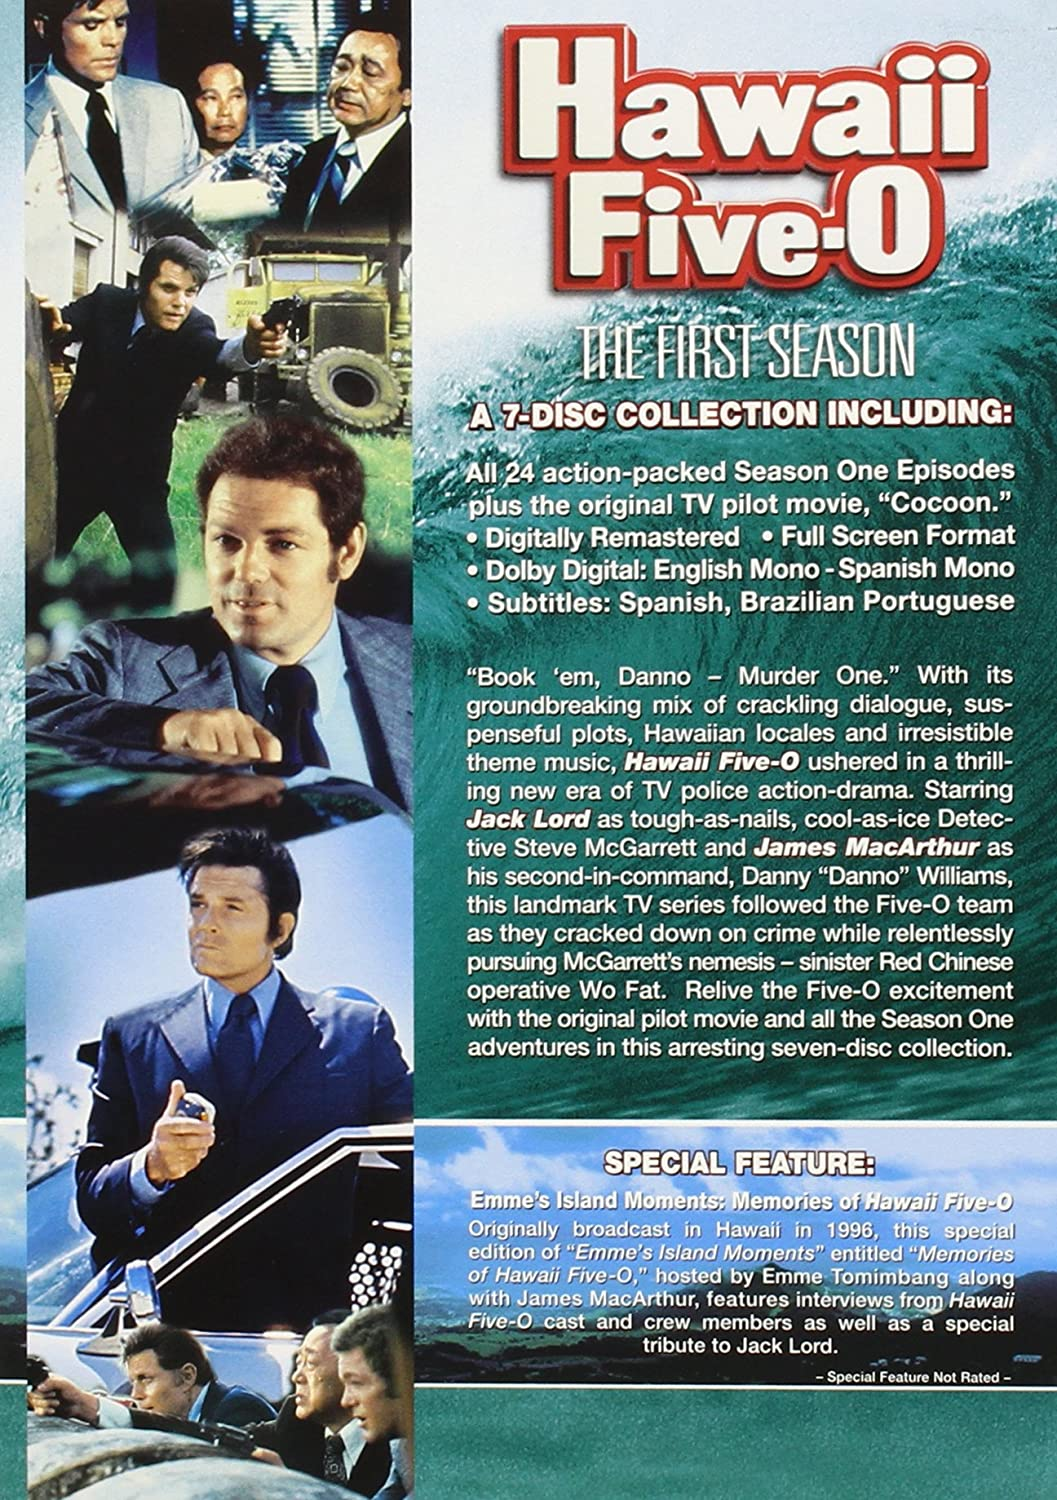 jack lord imdb film and television stars set to be at denver  com hawaii five o season 1 jack lord james macarthur com hawaii five o season 1